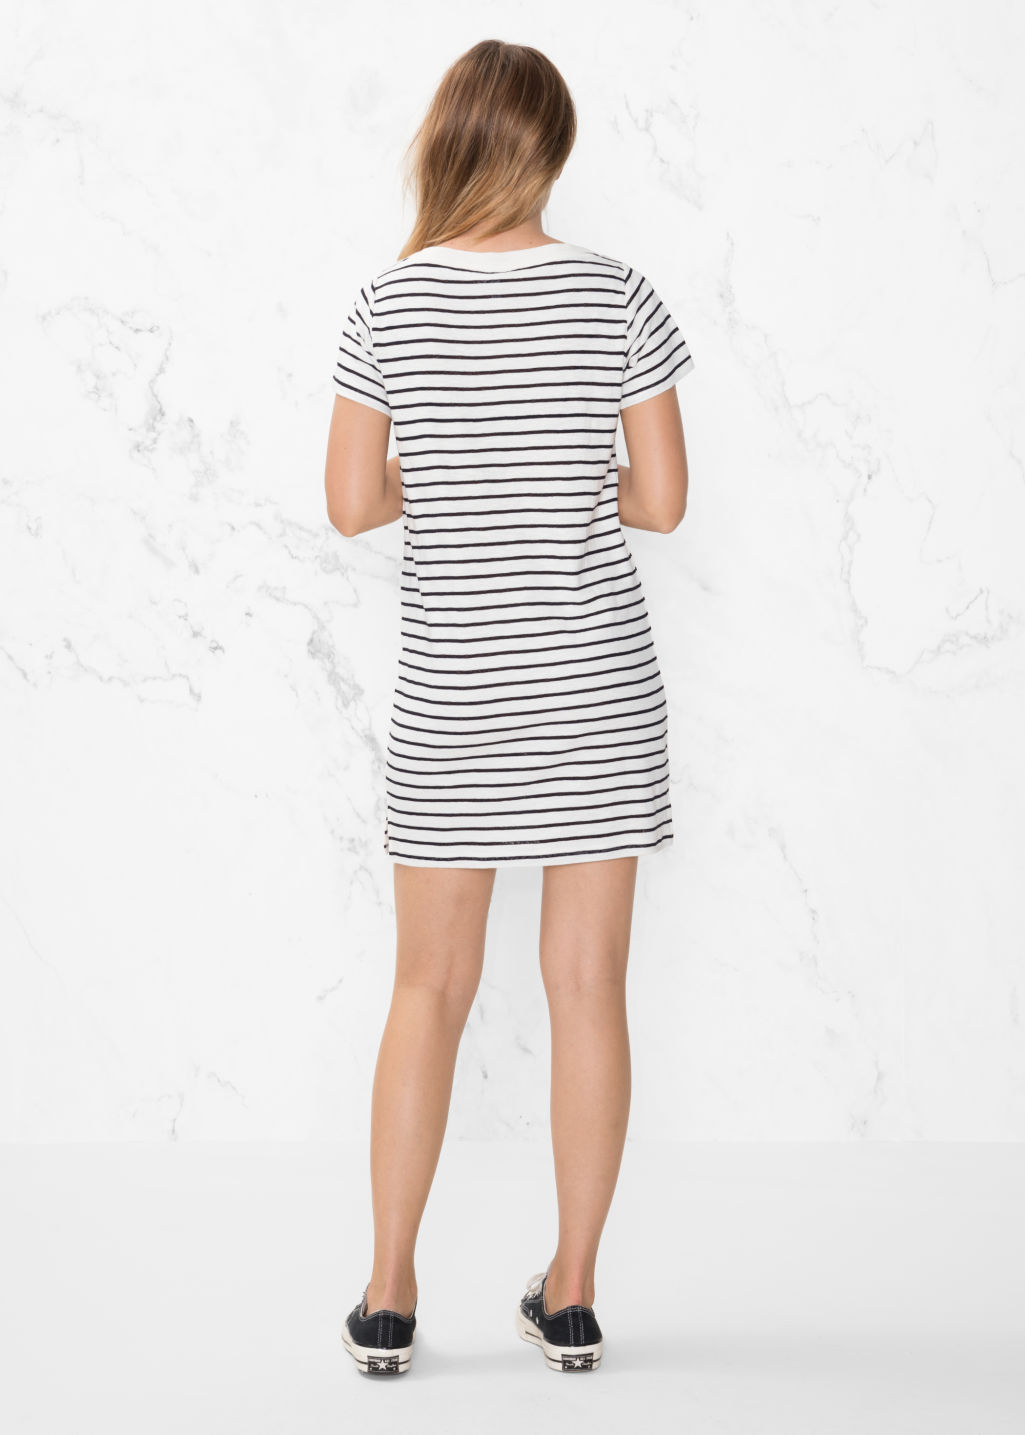 Oversized T Shirt Dress Striped Dresses Other Stories Grey Model Back Image Of In Blue